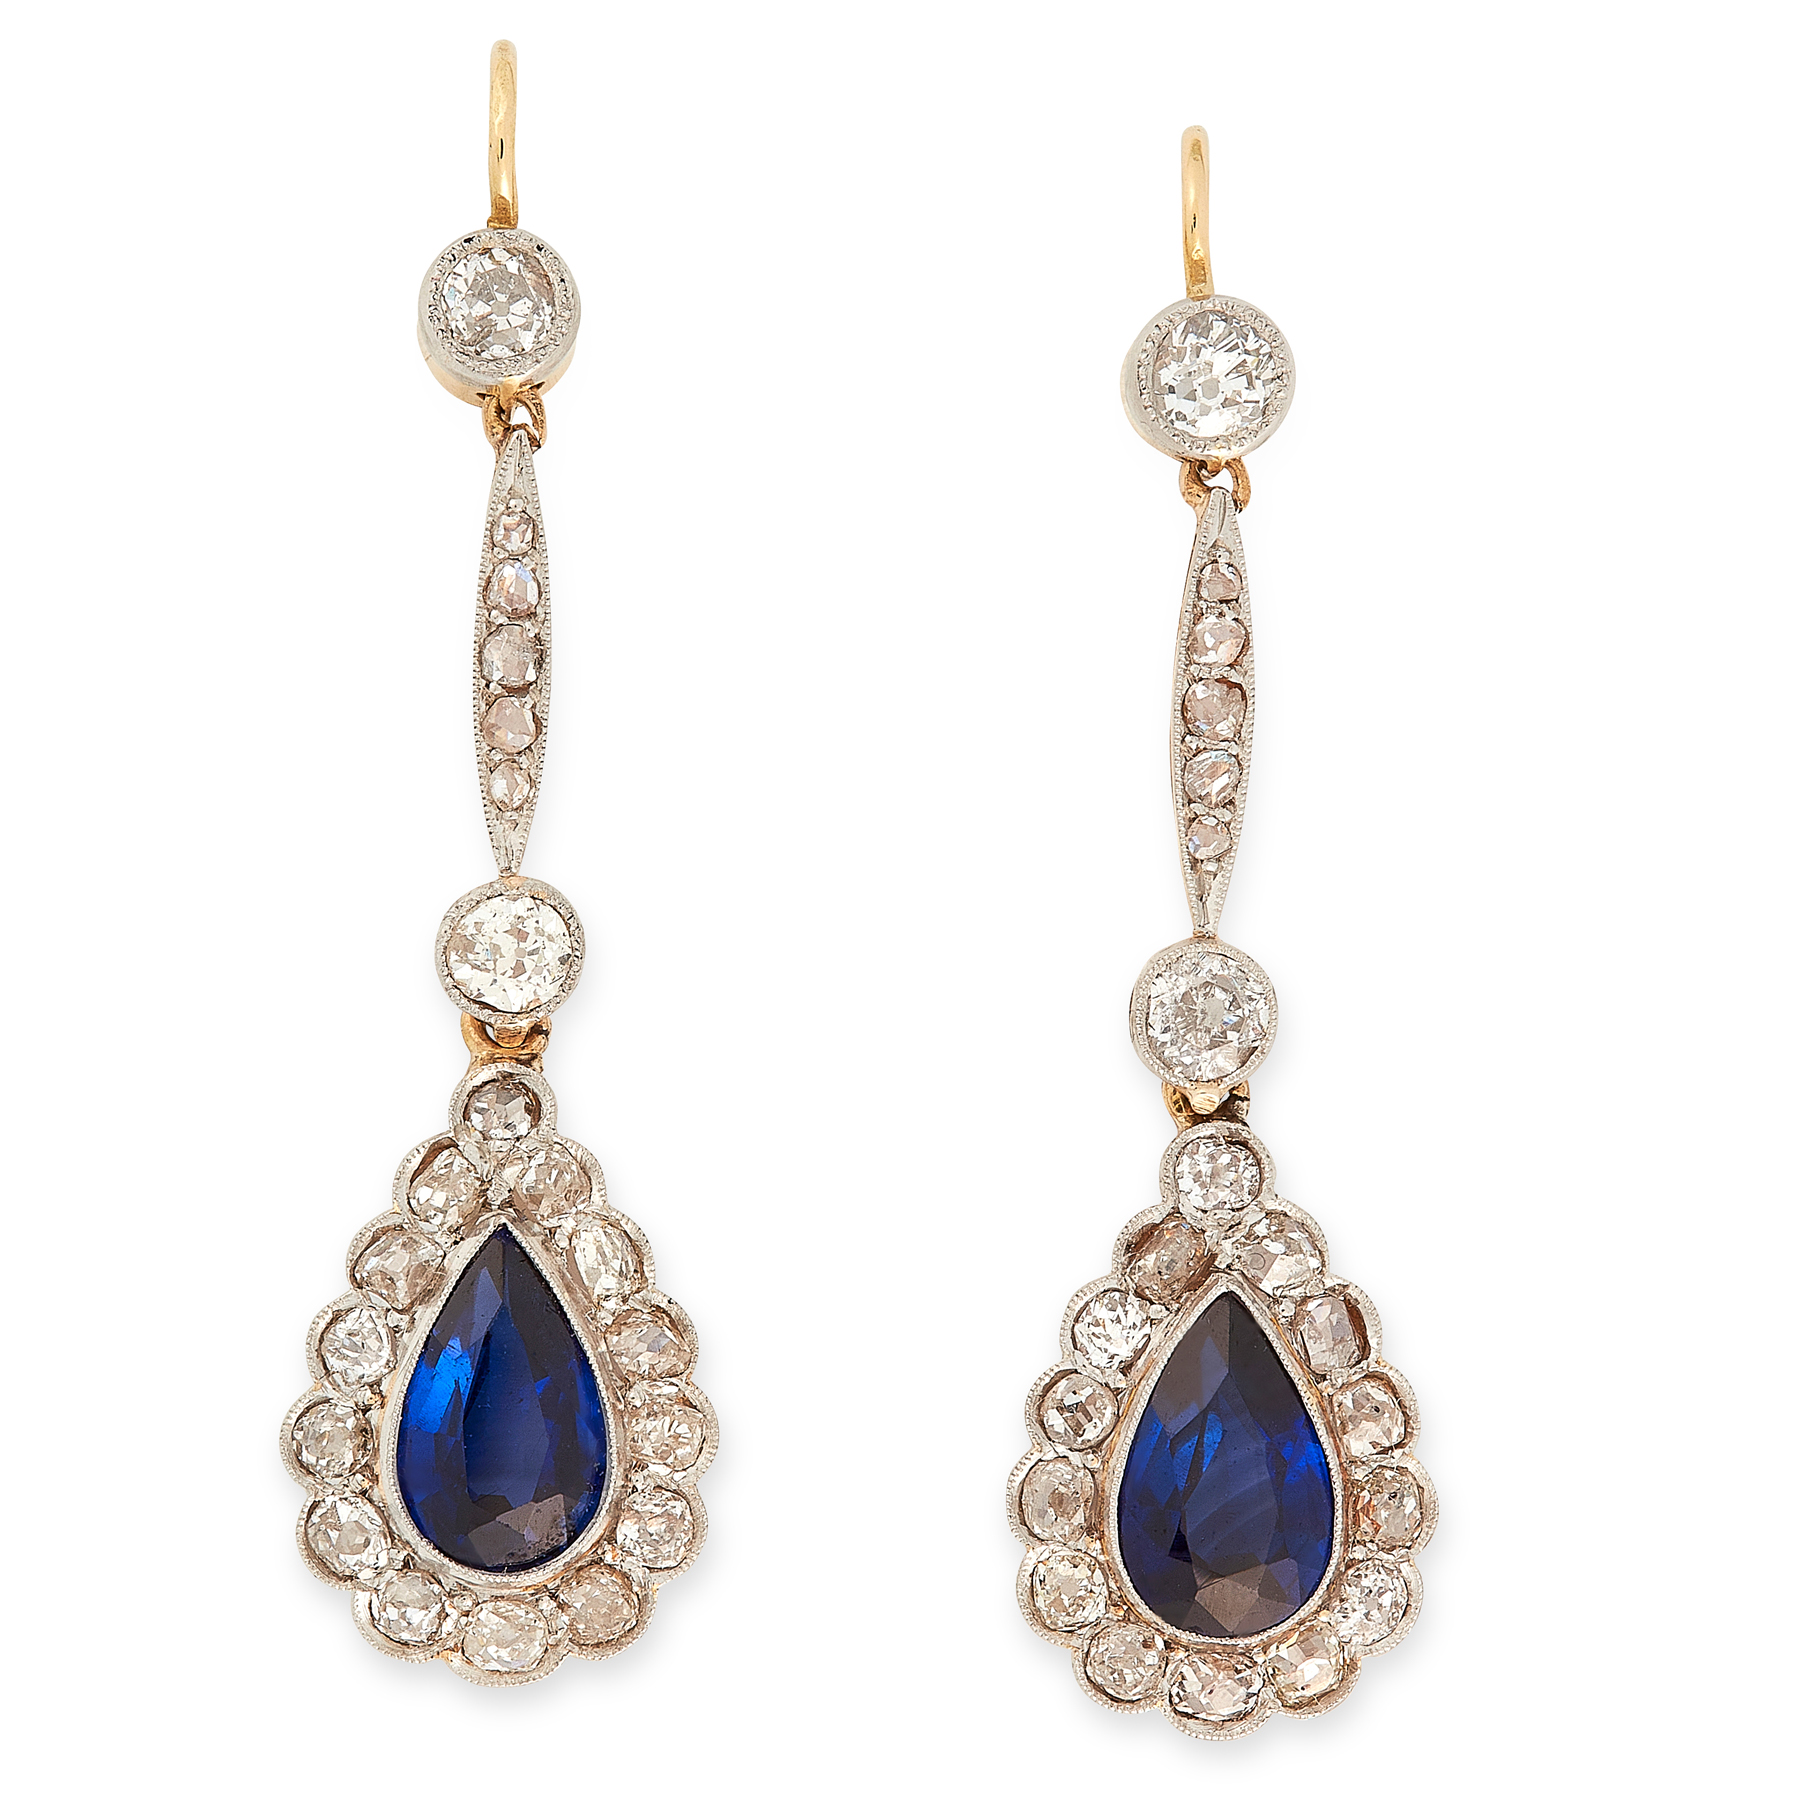 A PAIR OF ANTIQUE SAPPHIRE AND DIAMOND EARRINGS, EARLY 20TH CENTURY in yellow gold and platinum,